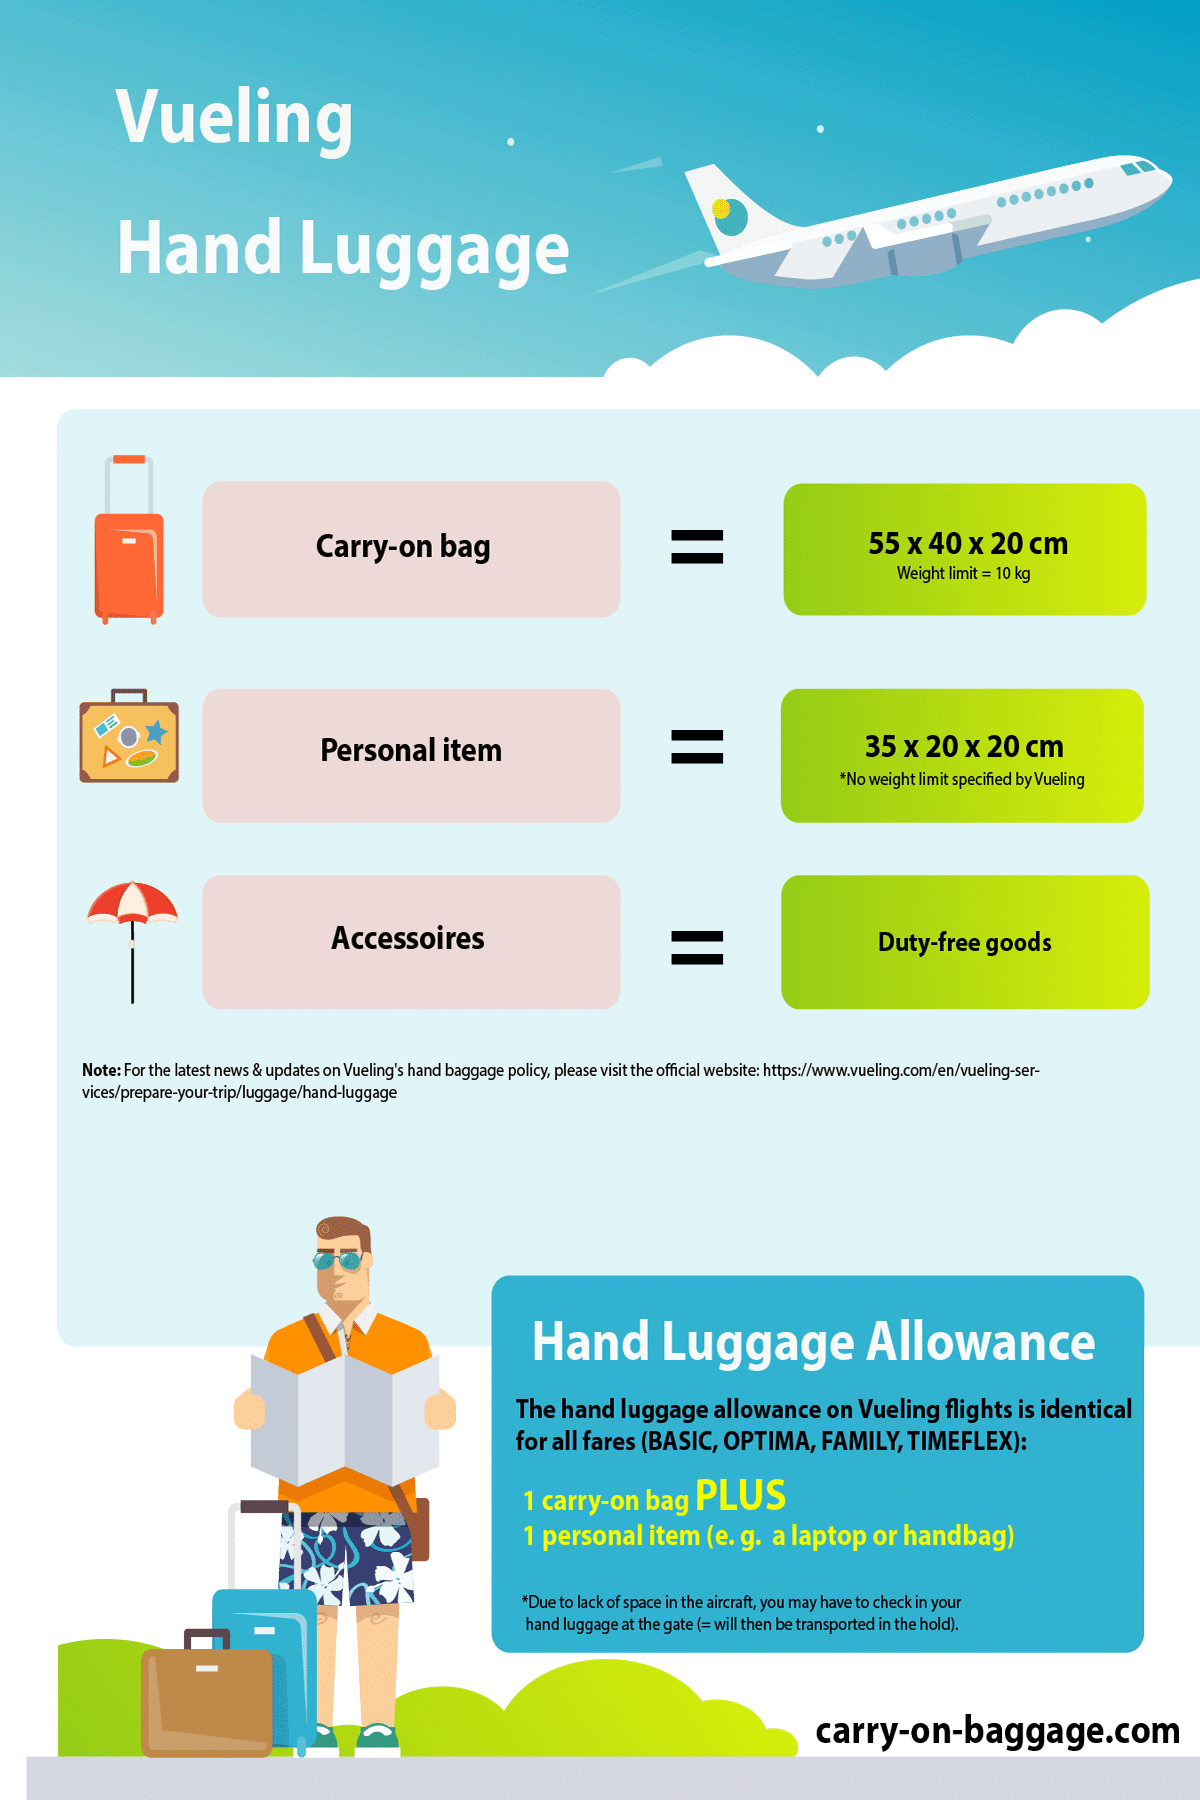 How Much Hand Luggage is allowed at Vueling?